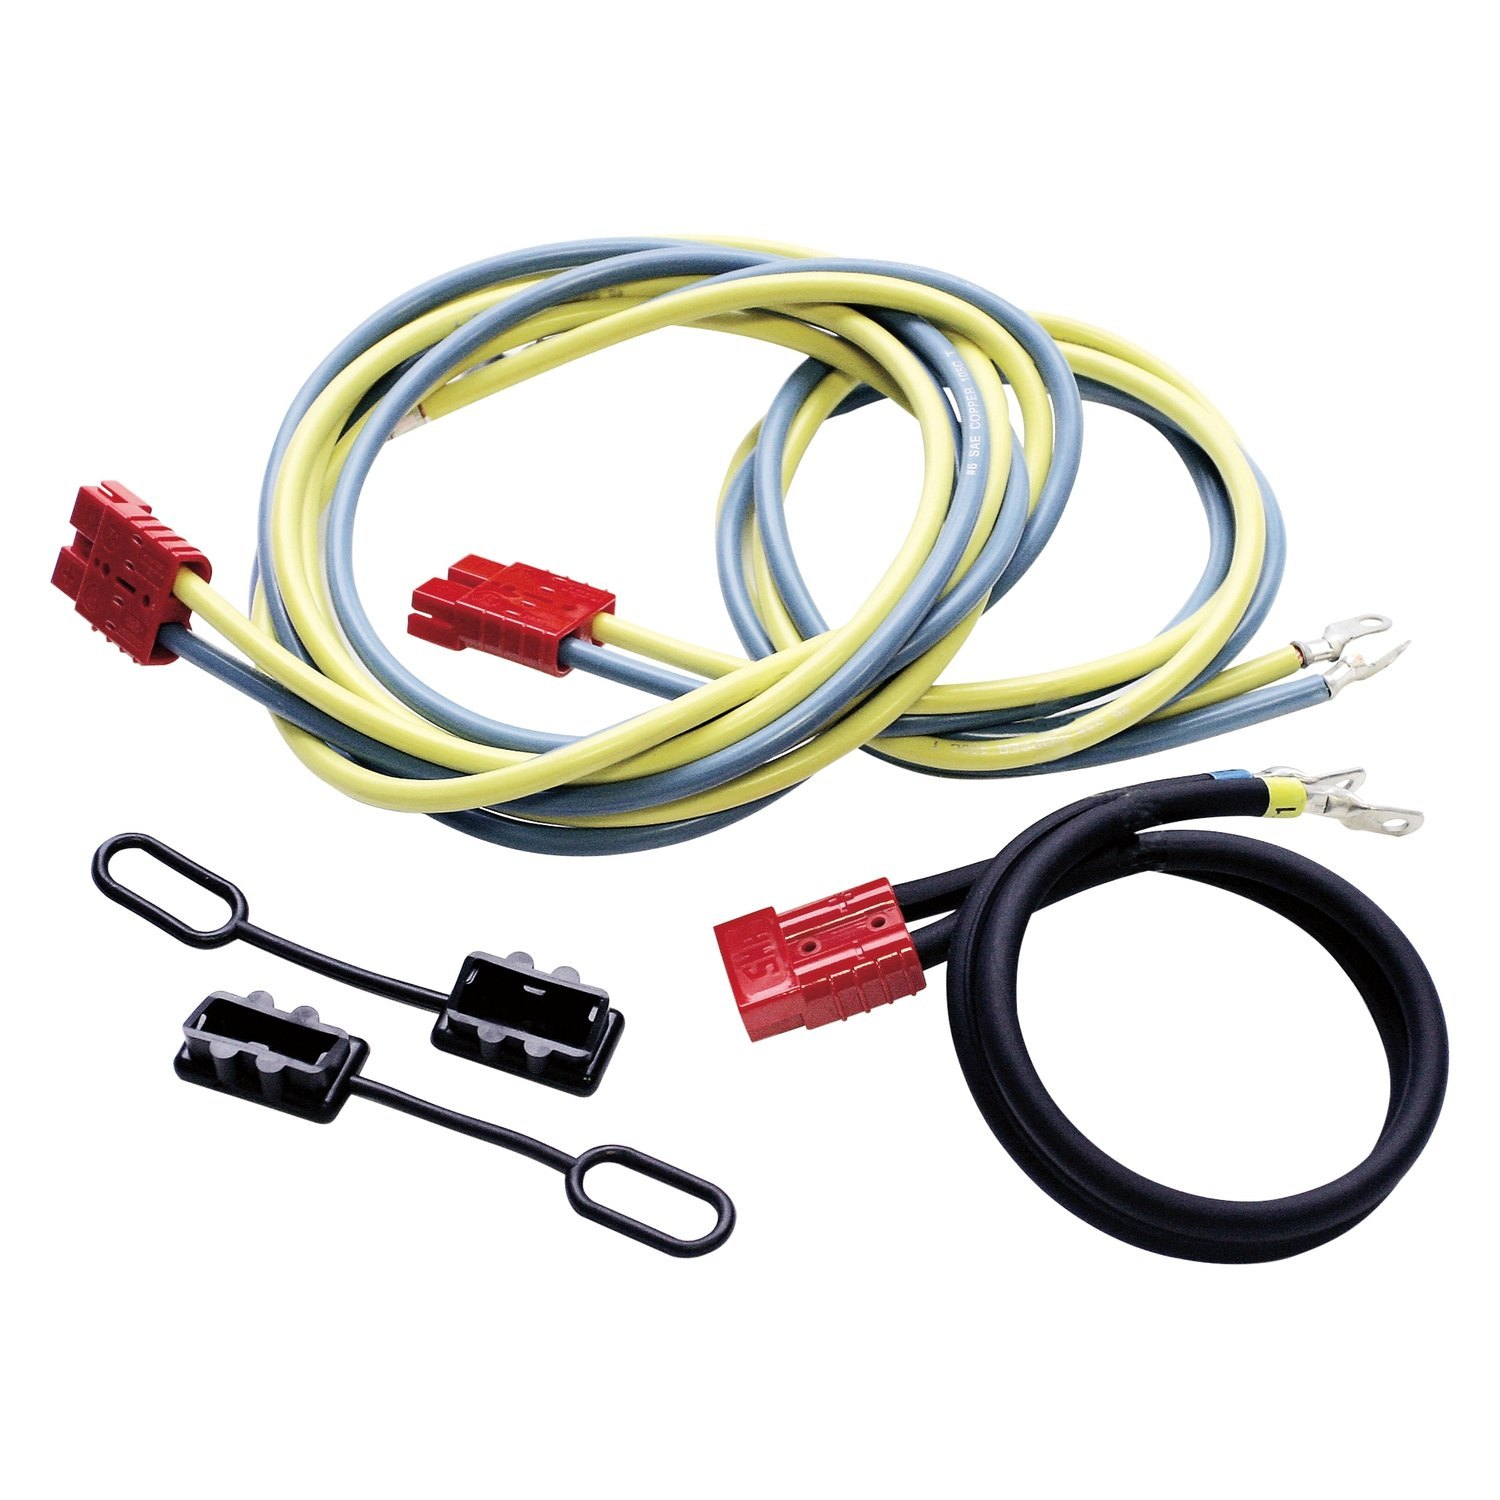 Winch Wiring Diagram 243134d1146585900 Warn Winch Wiring Warn Wiring